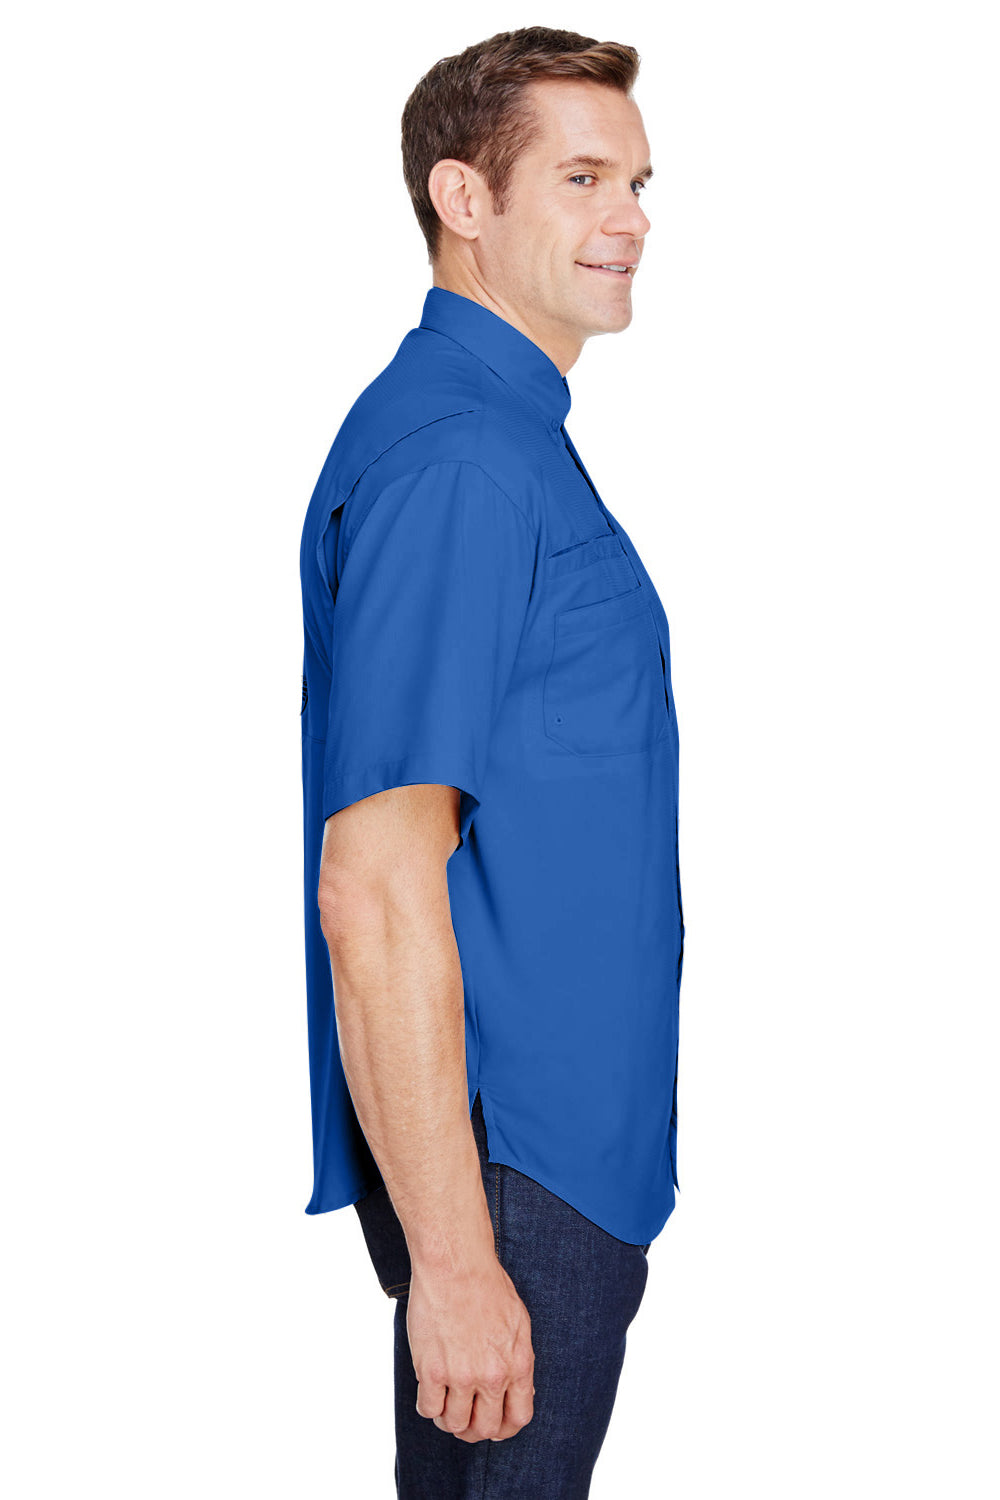 Columbia 7266 Mens Tamiami II Moisture Wicking Short Sleeve Button Down Shirt w/ Double Pockets Vivid Blue Side